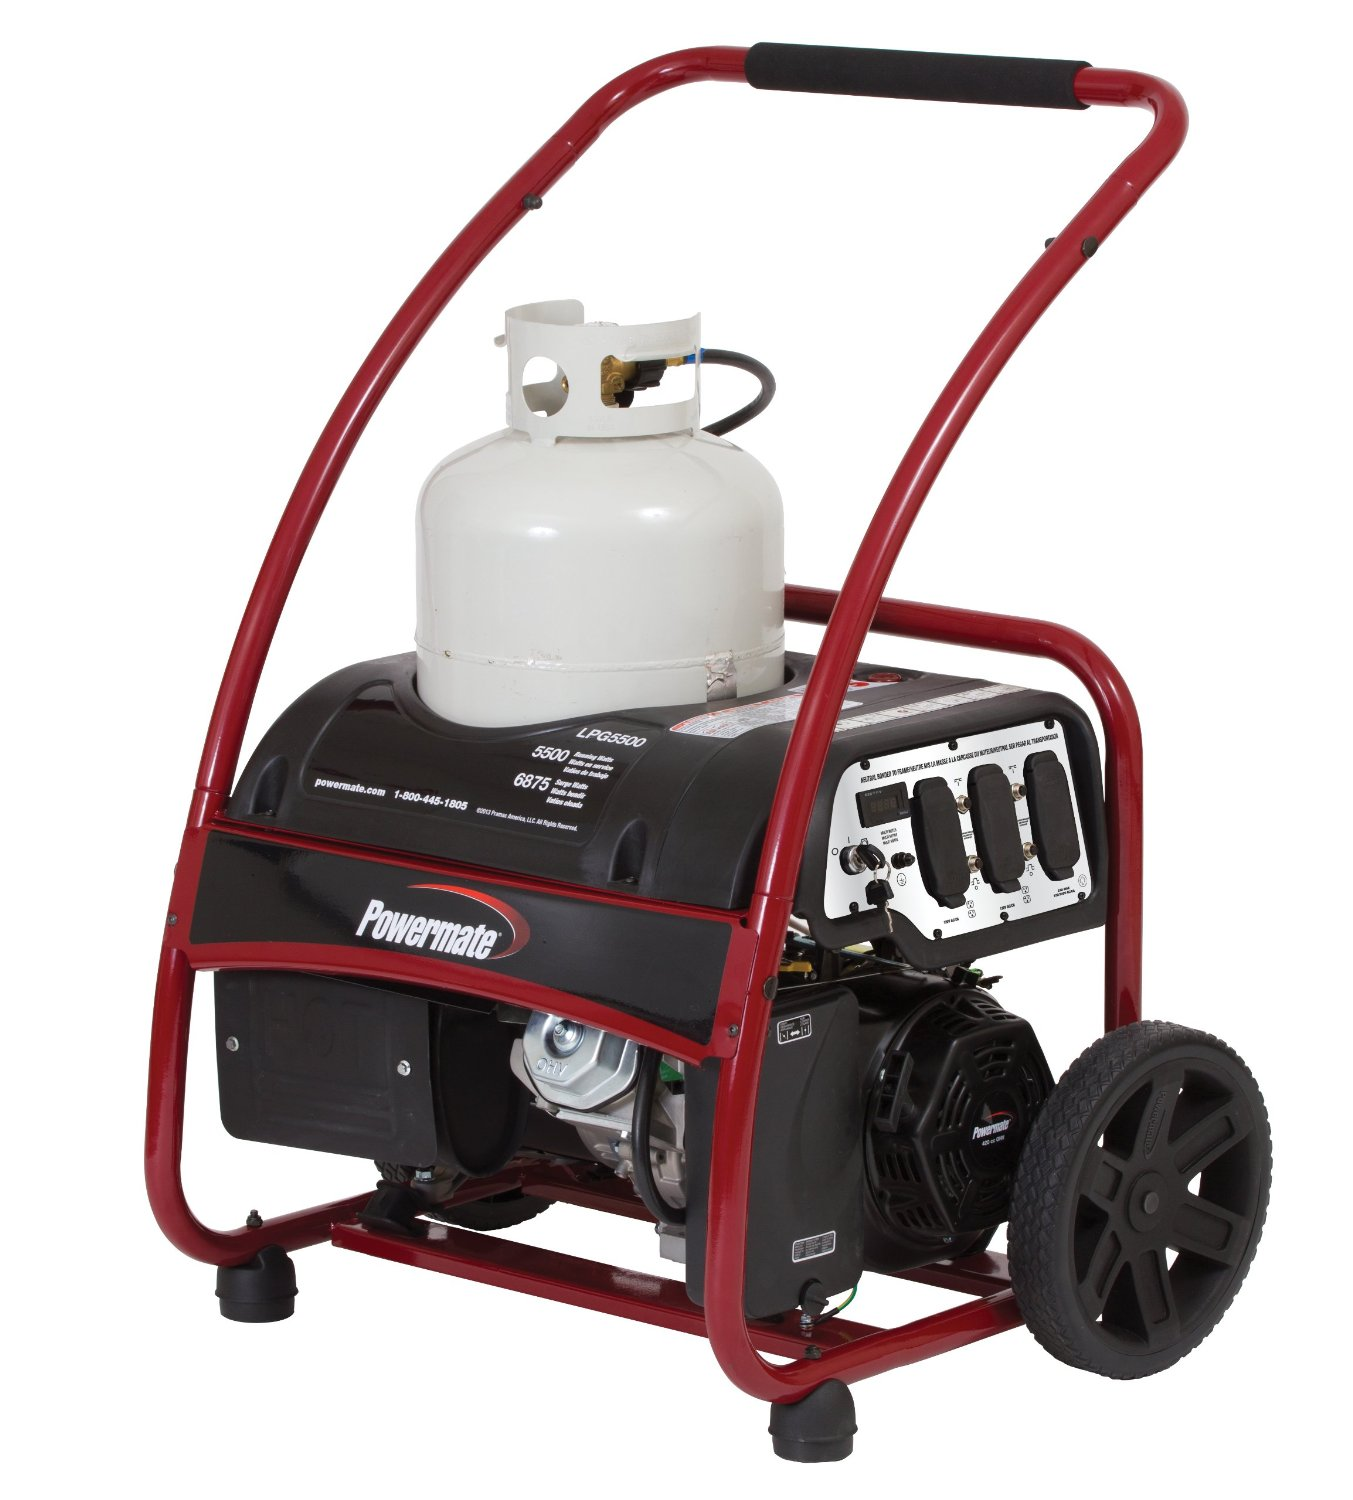 powermate portable propane generator   6875 watt electric start